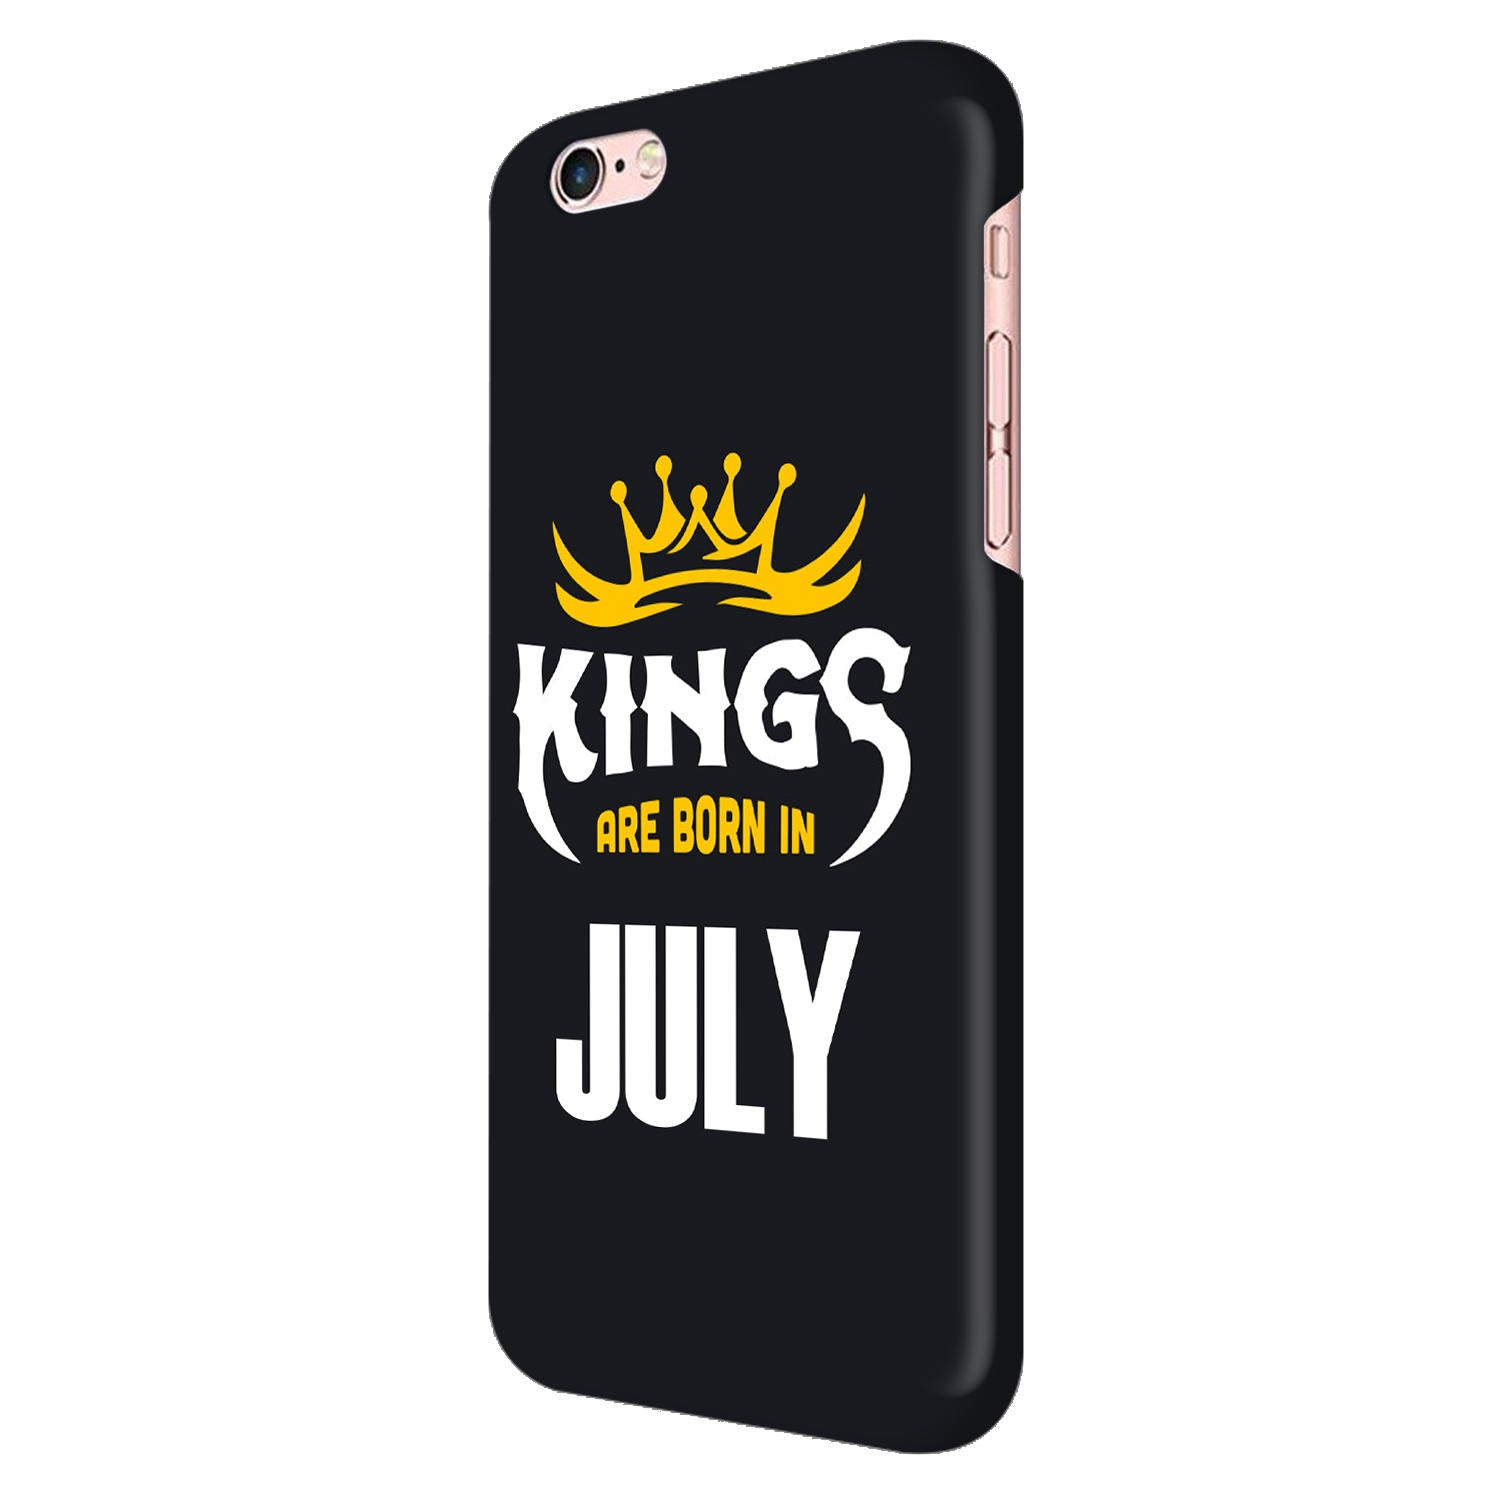 Kings July - Narcissist iPhone 6 Mobile Cover Case - MADANYU